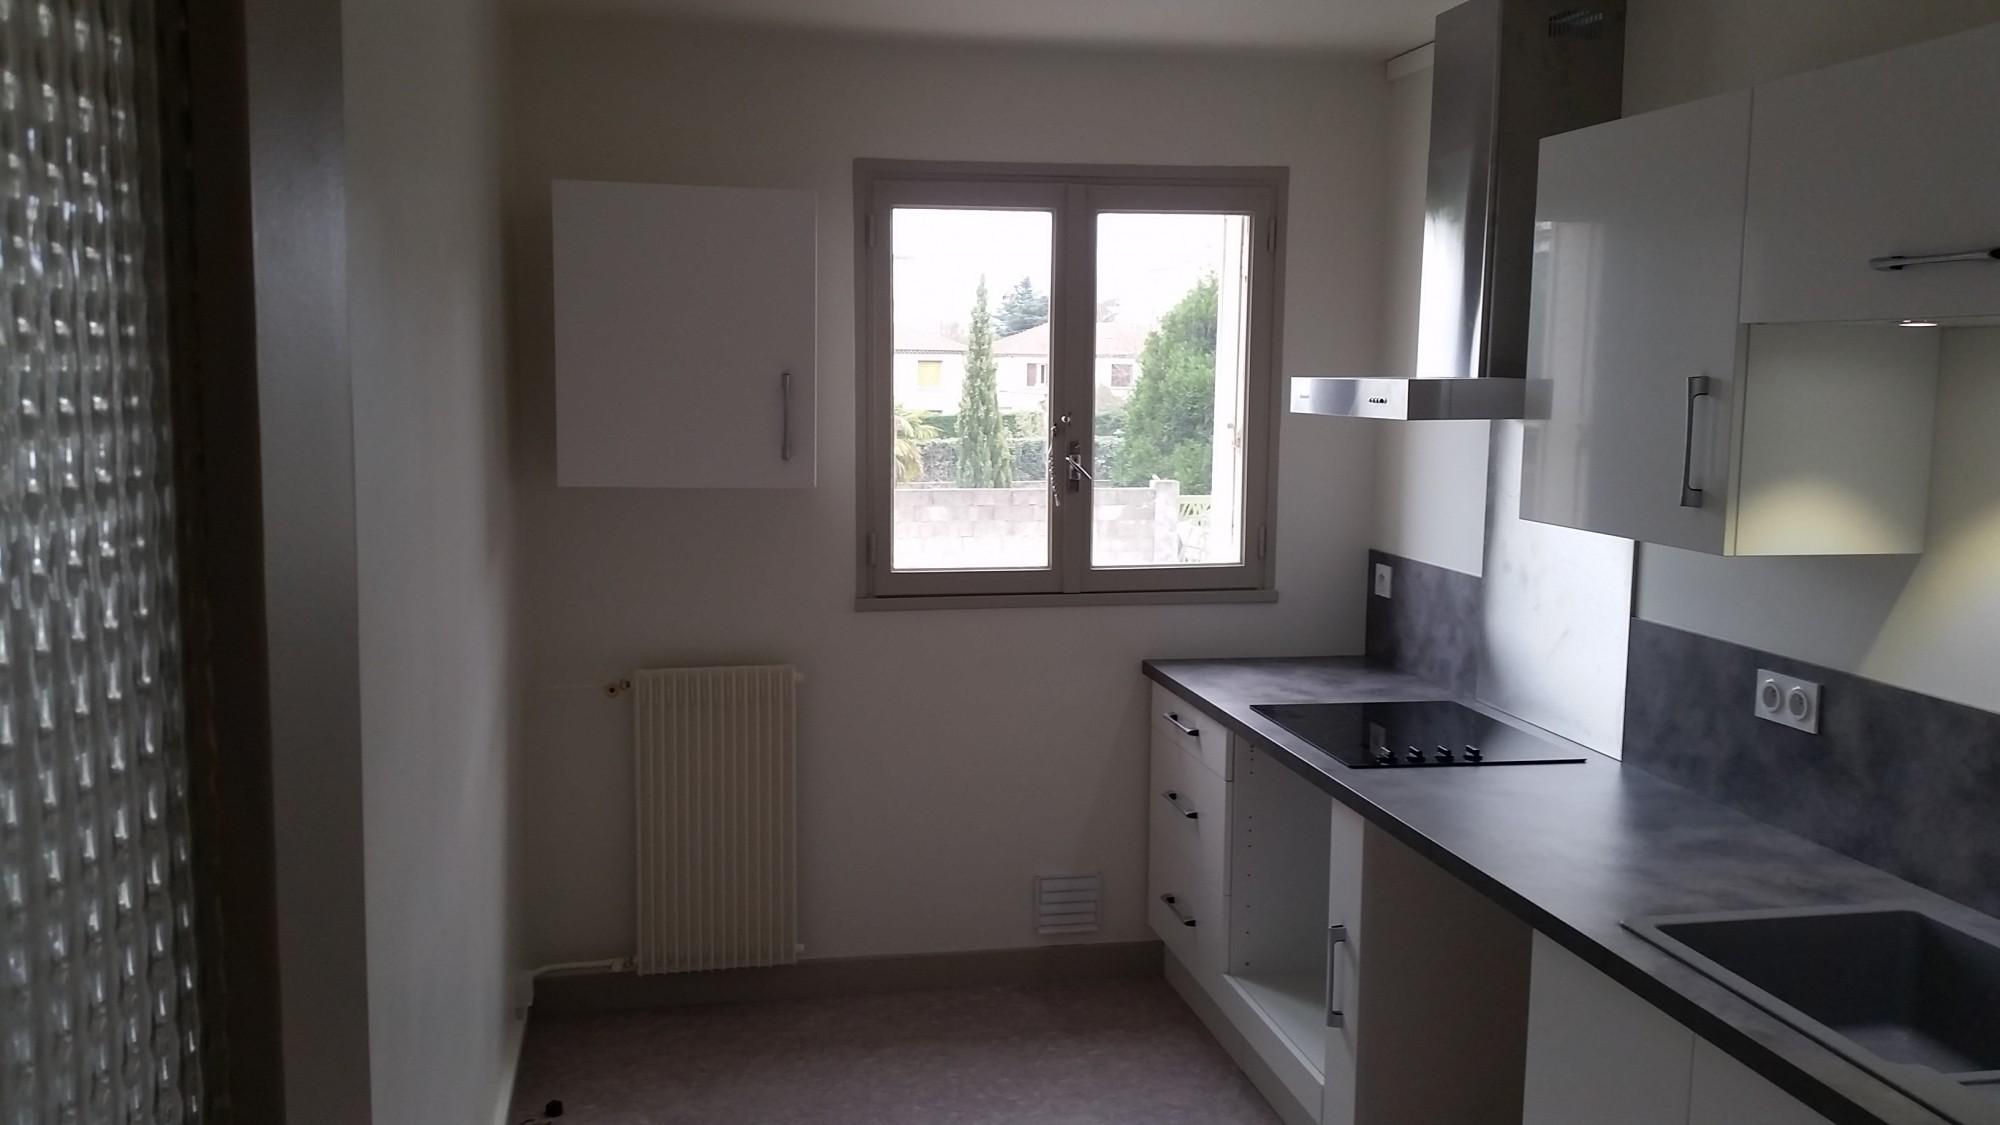 Location bel appartement t3 sur le centre de guilherand granges l 39 esterel avenue de la - Appartement guilherand granges ...